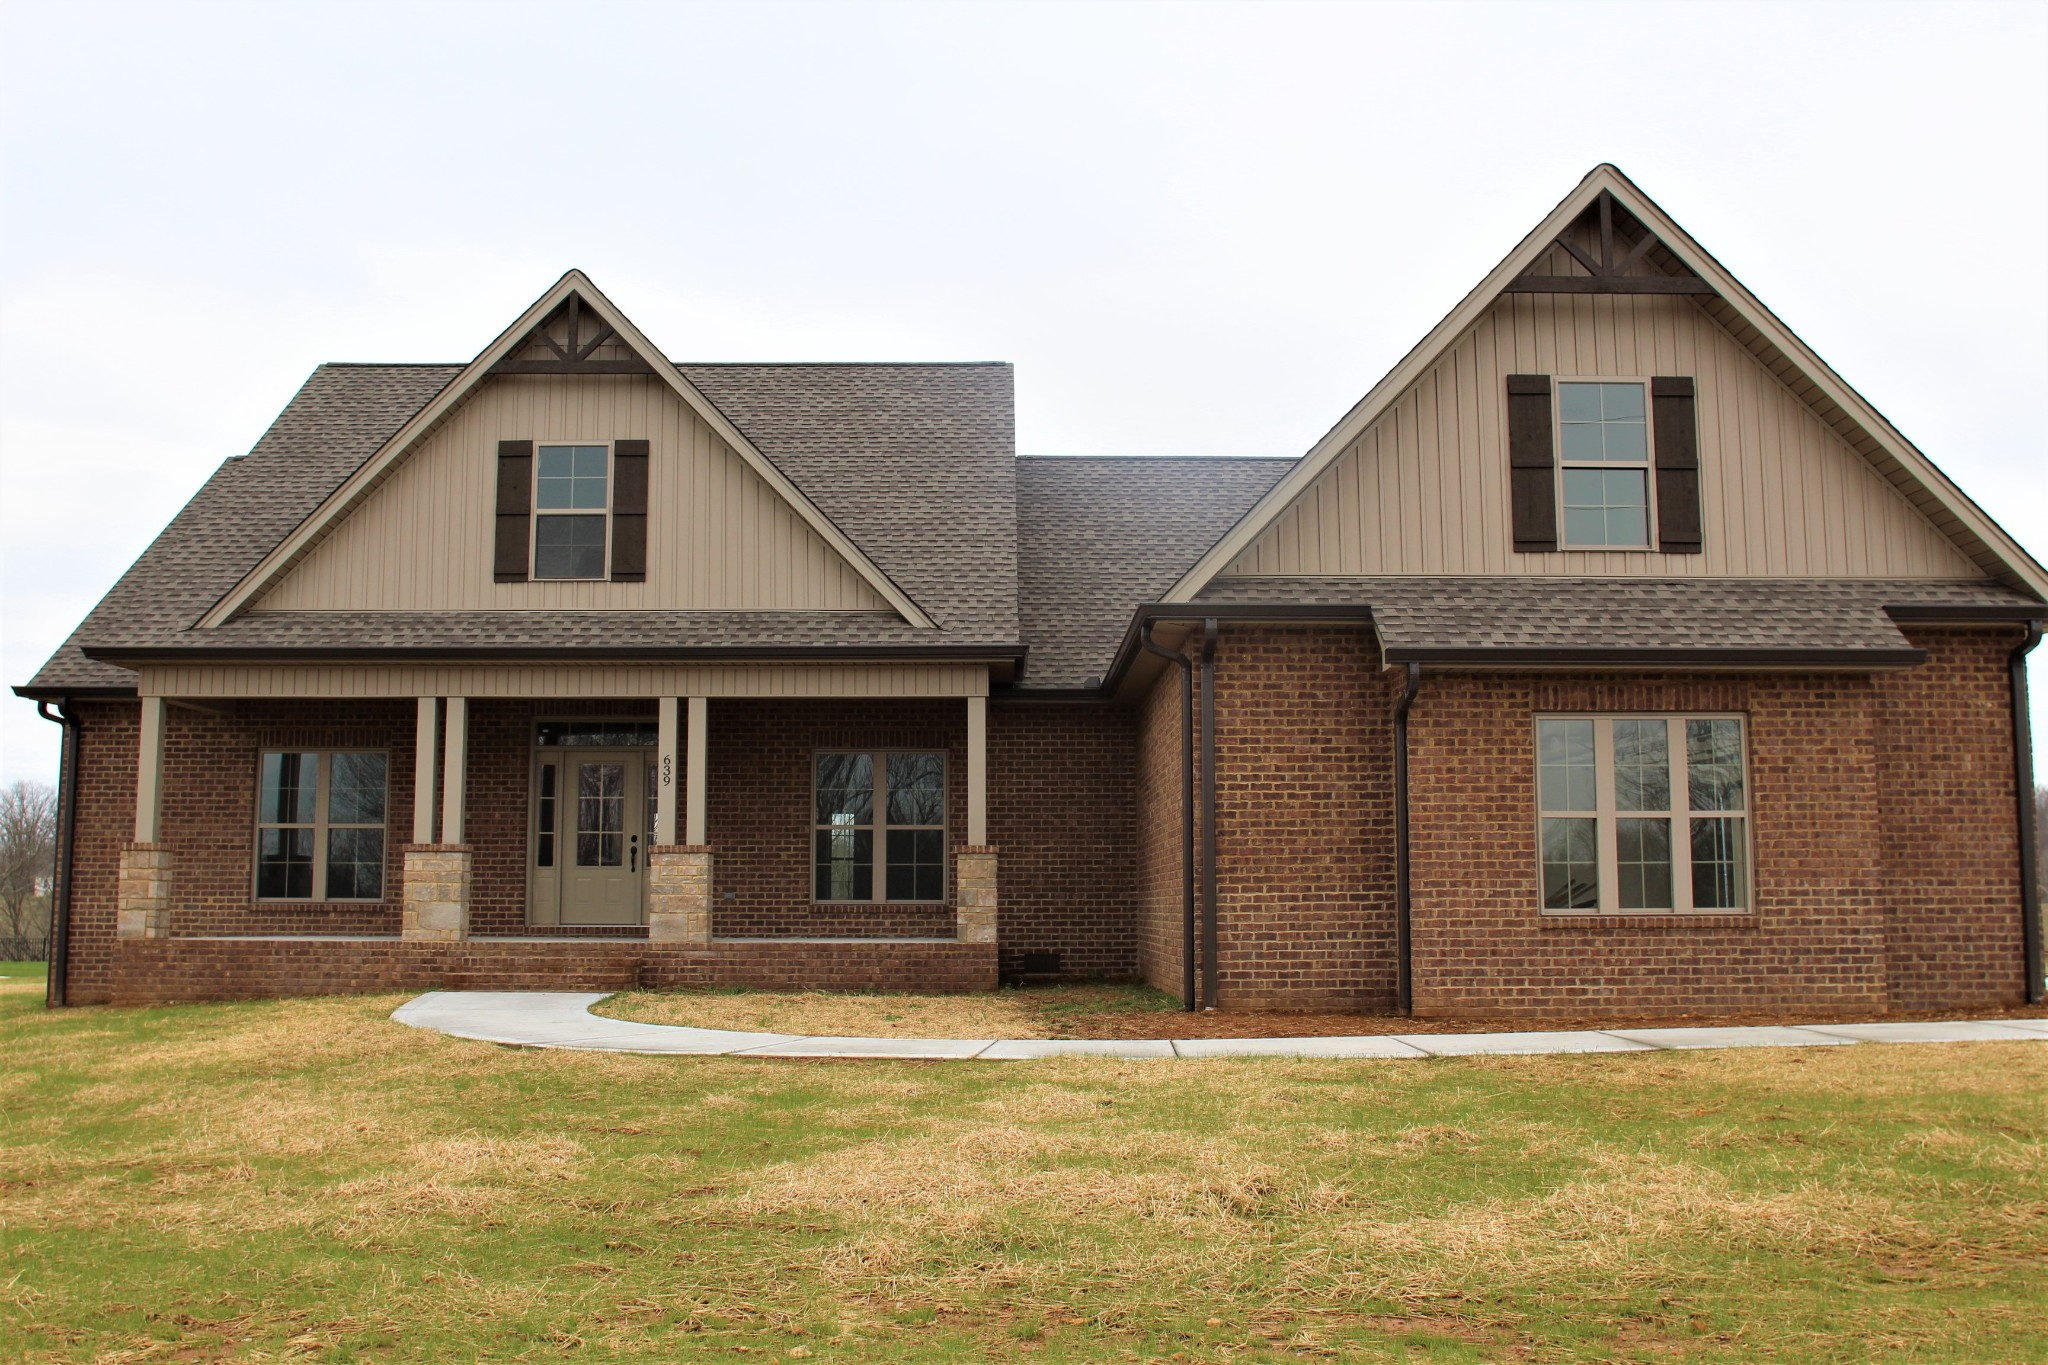 639 Blue Water Dr, Cookeville, TN 38506 - Cookeville, TN real estate listing